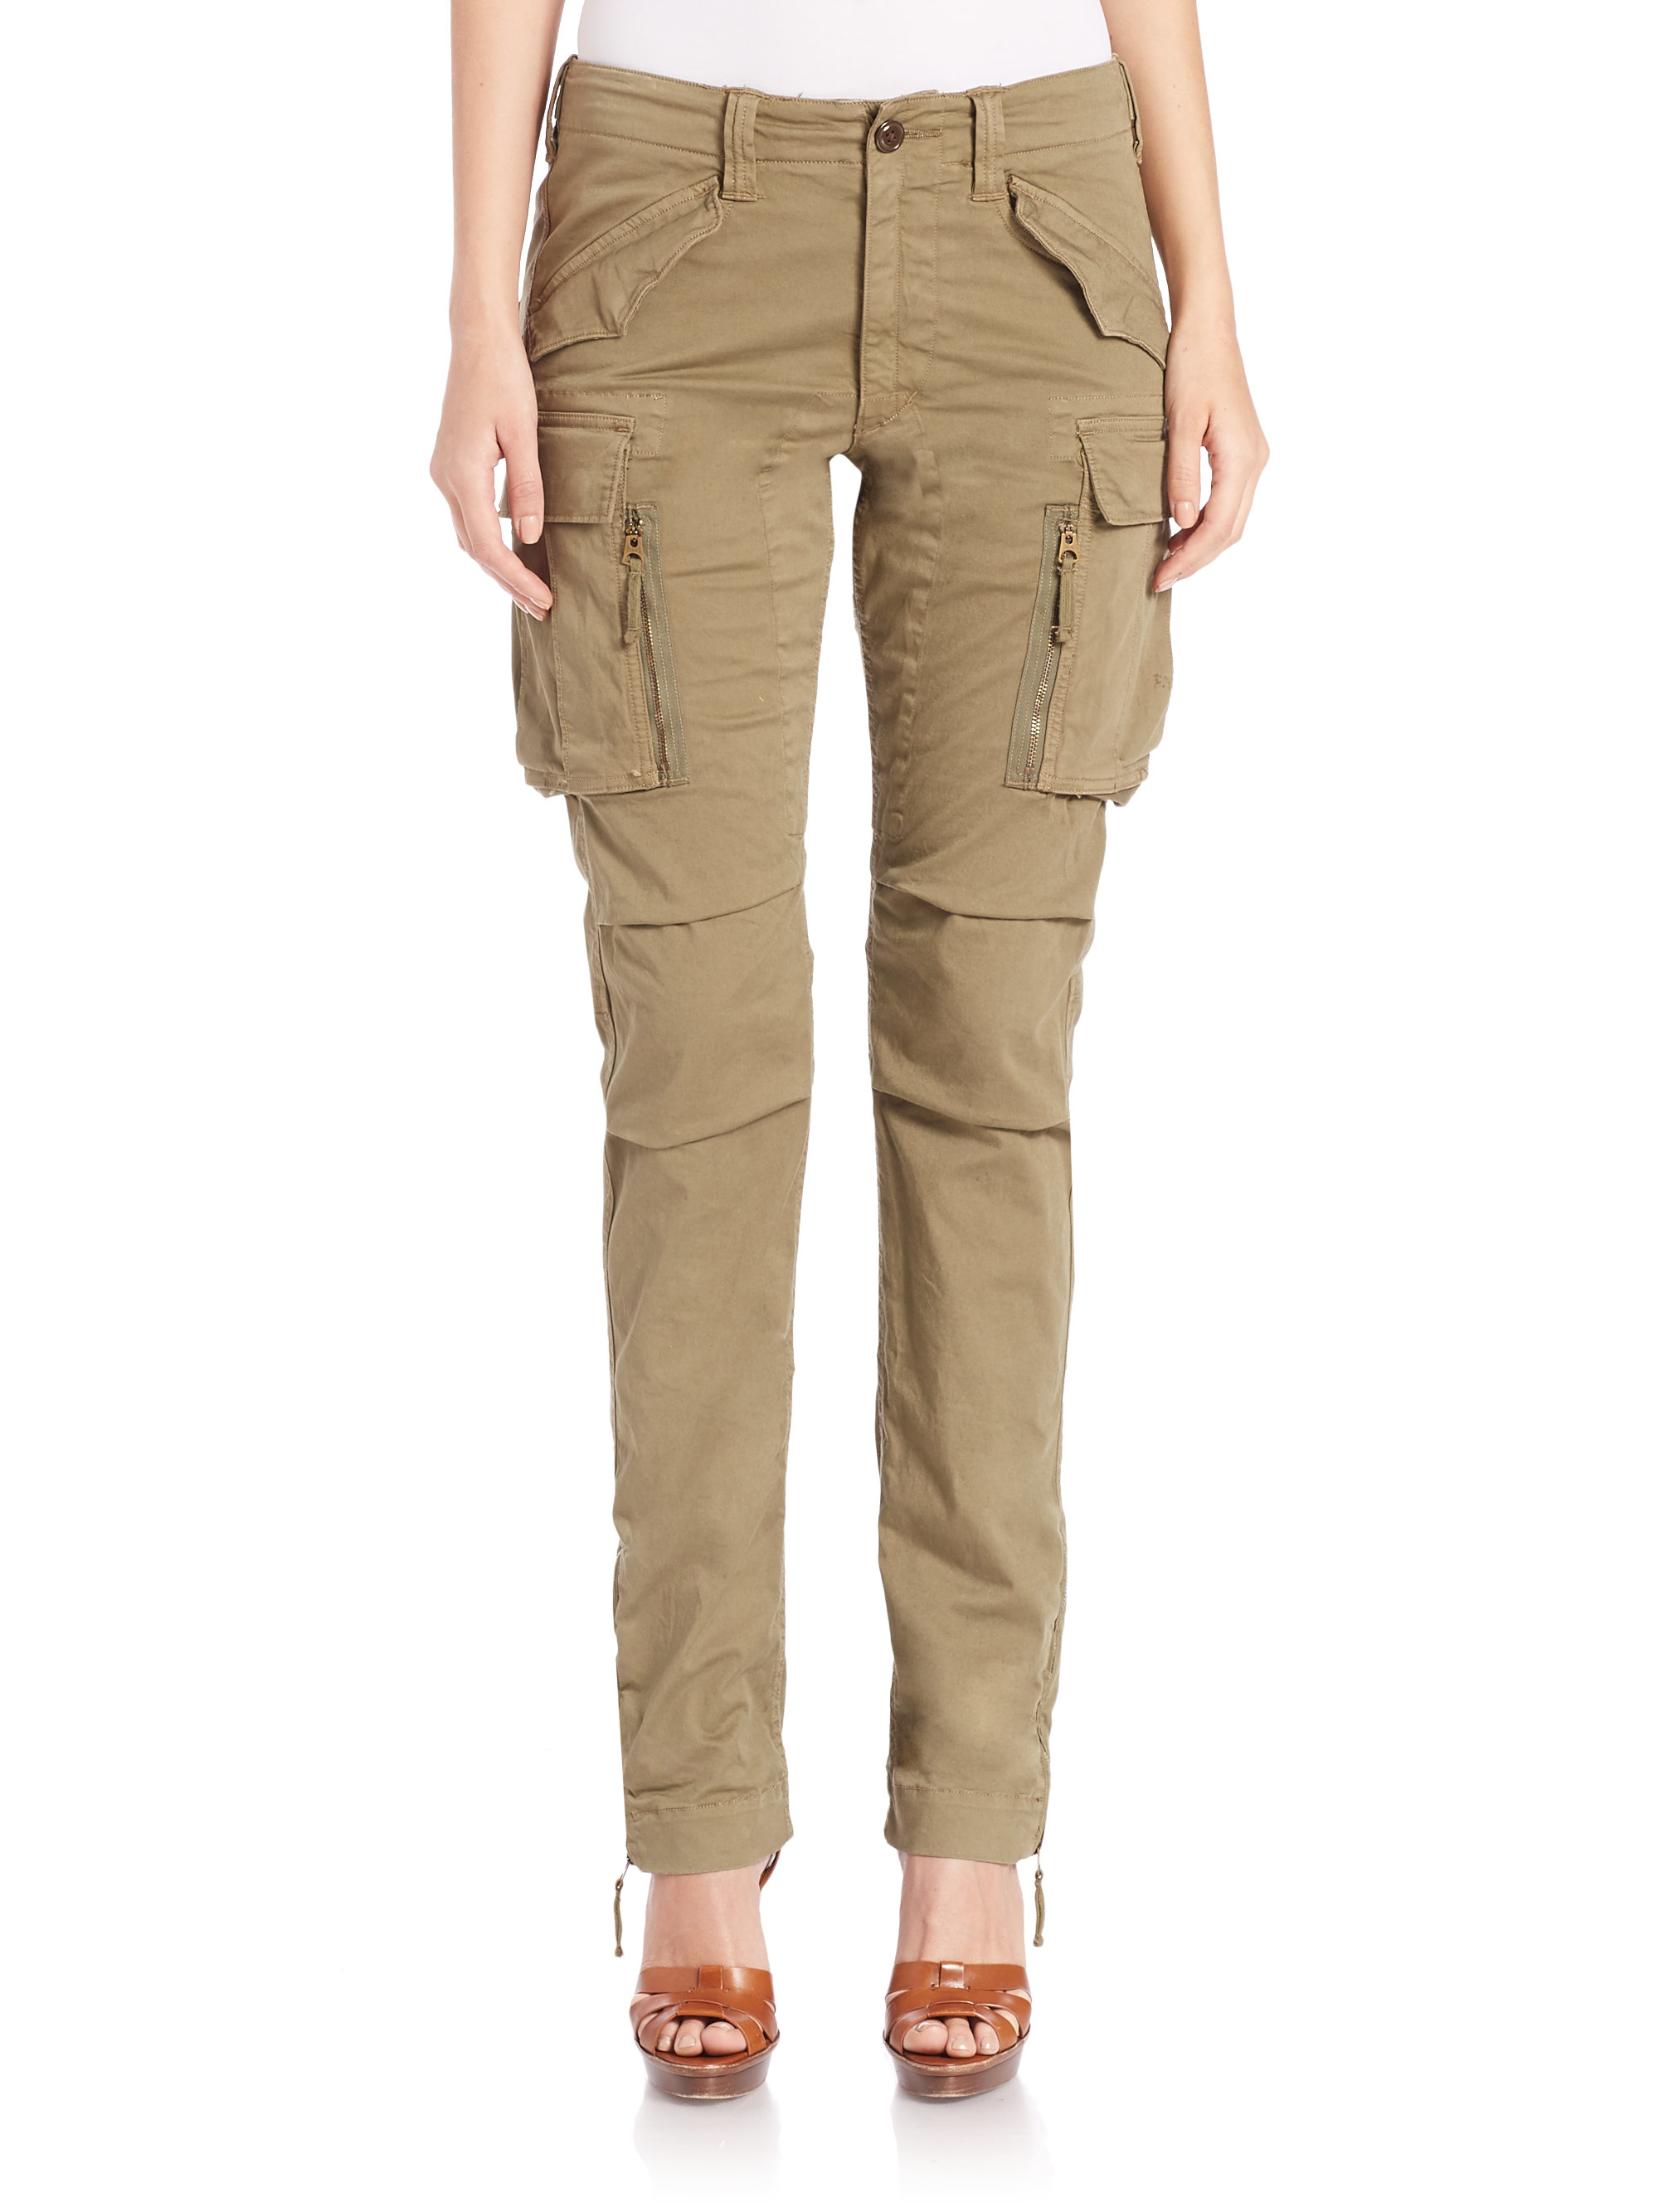 Cool Lauren By Ralph Lauren Anjaria Cargo Pants In Khaki Barrier Khaki